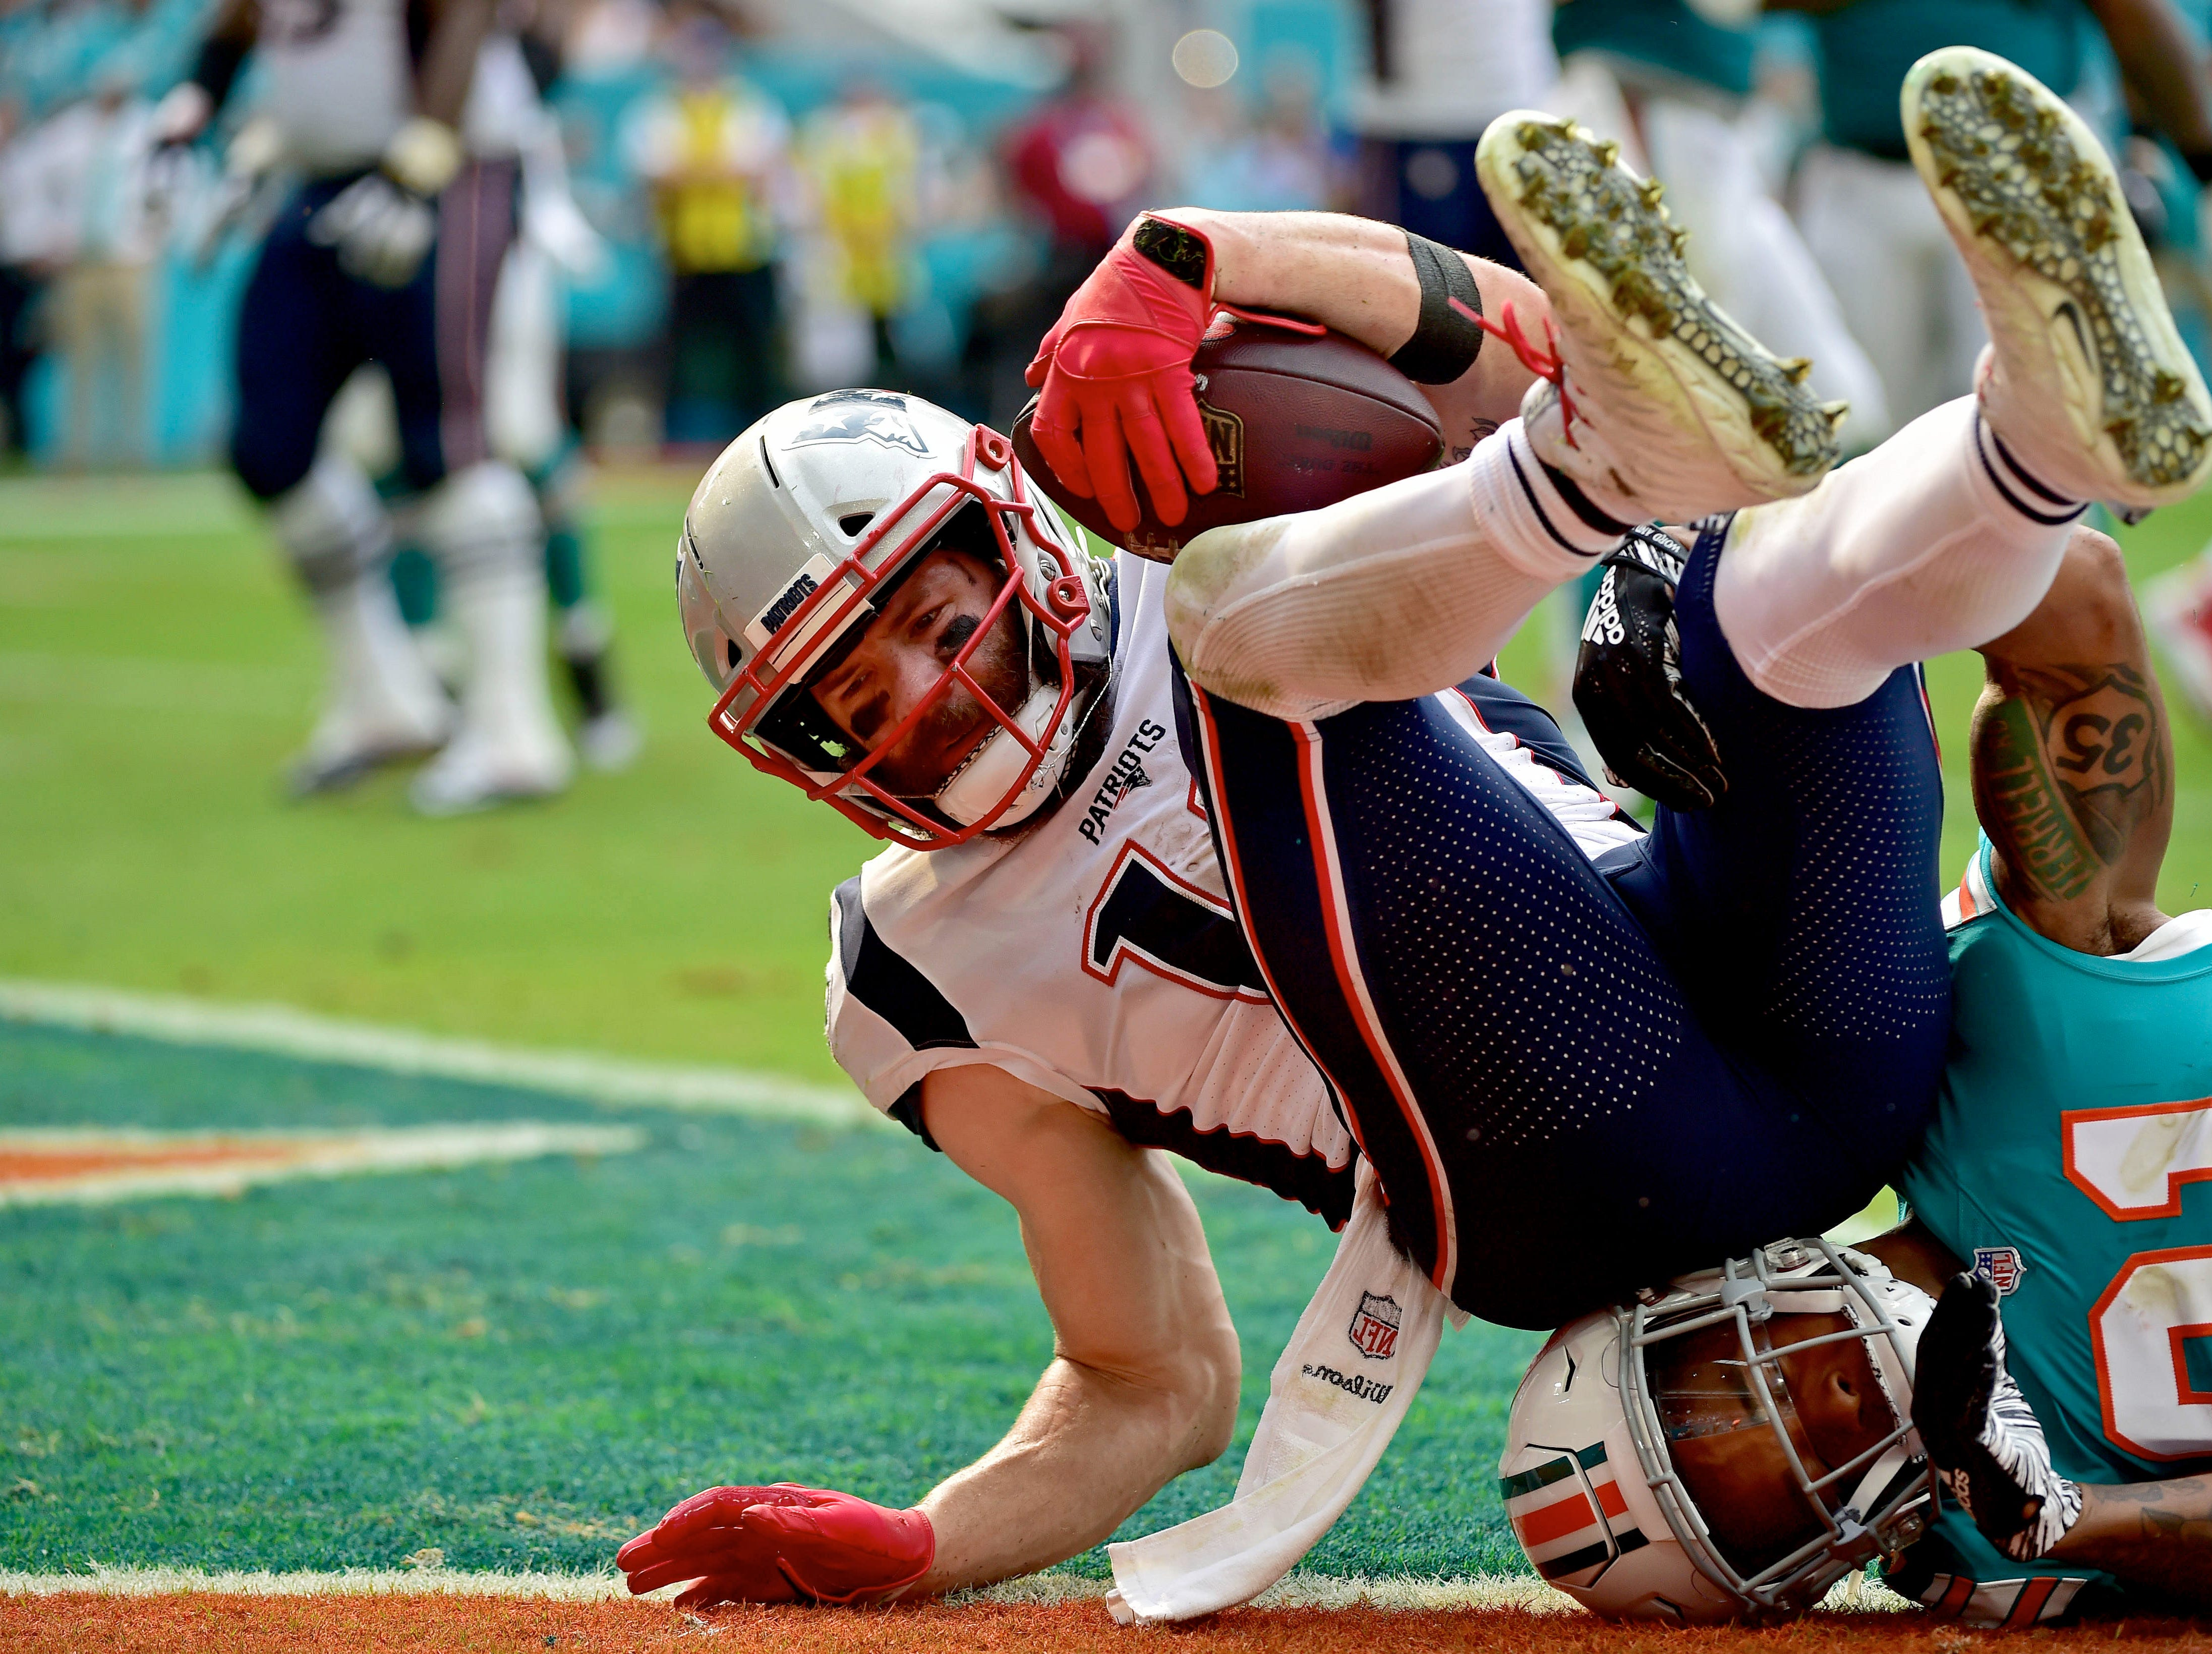 Patriots wide receiver Julian Edelman scores a touchdown against the Dolphins in the first half.